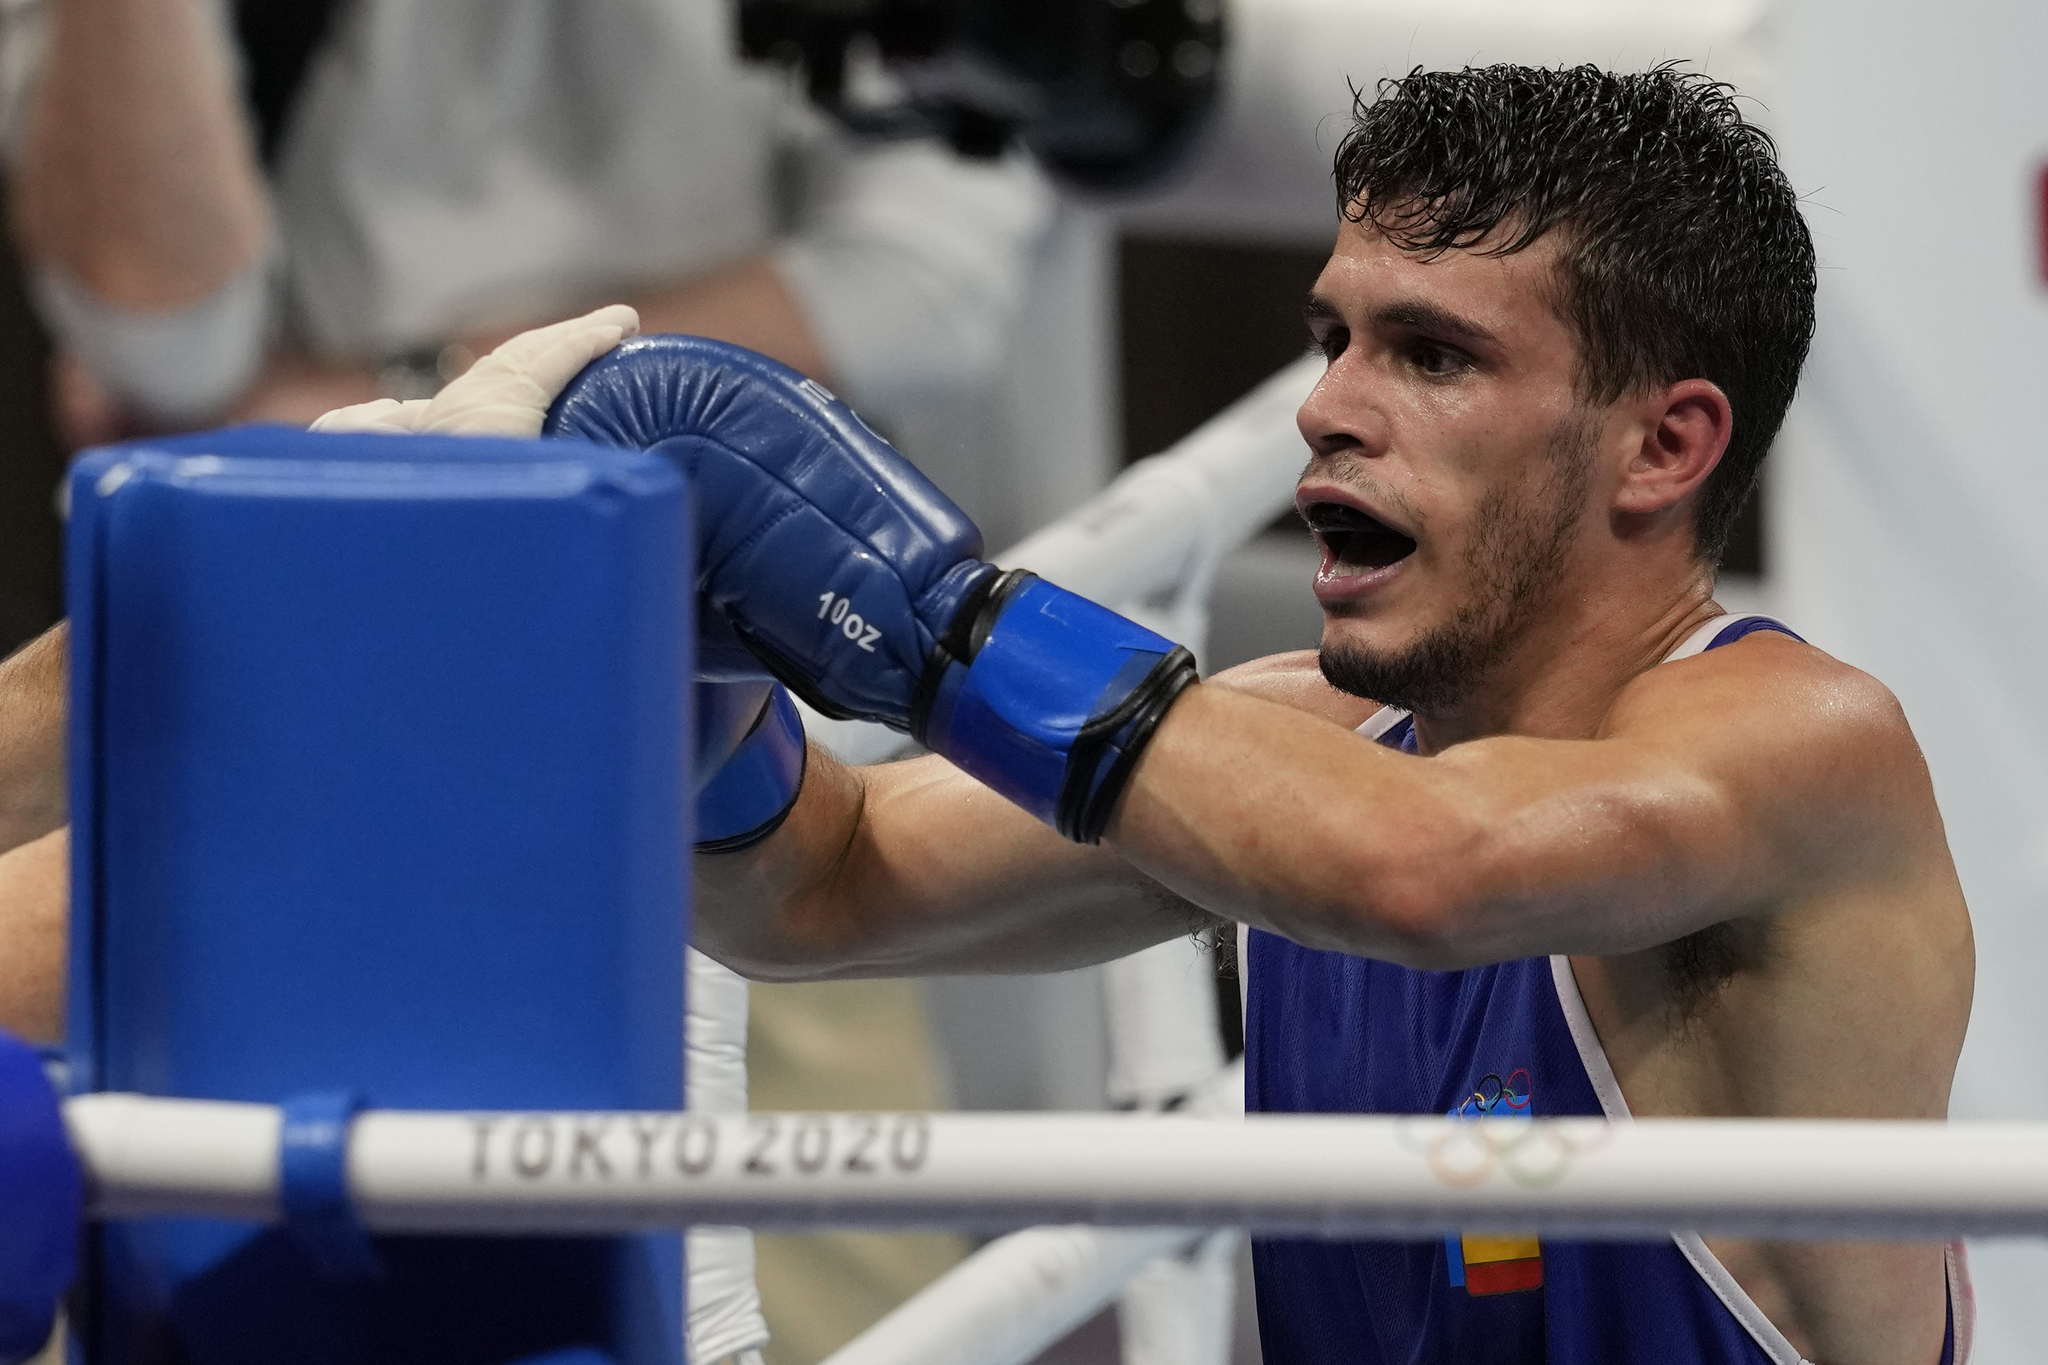 Spain's Gabriel lt;HIT gt;Escobar lt;/HIT gt; Mascunano after his men's flyweight 52-kg boxing match against Bulgaria's Daniel Panev Asenov at the 2020 Summer Olympics, Saturday, July 31, 2021, in Tokyo, Japan. (AP Photo/Themba Hadebe)